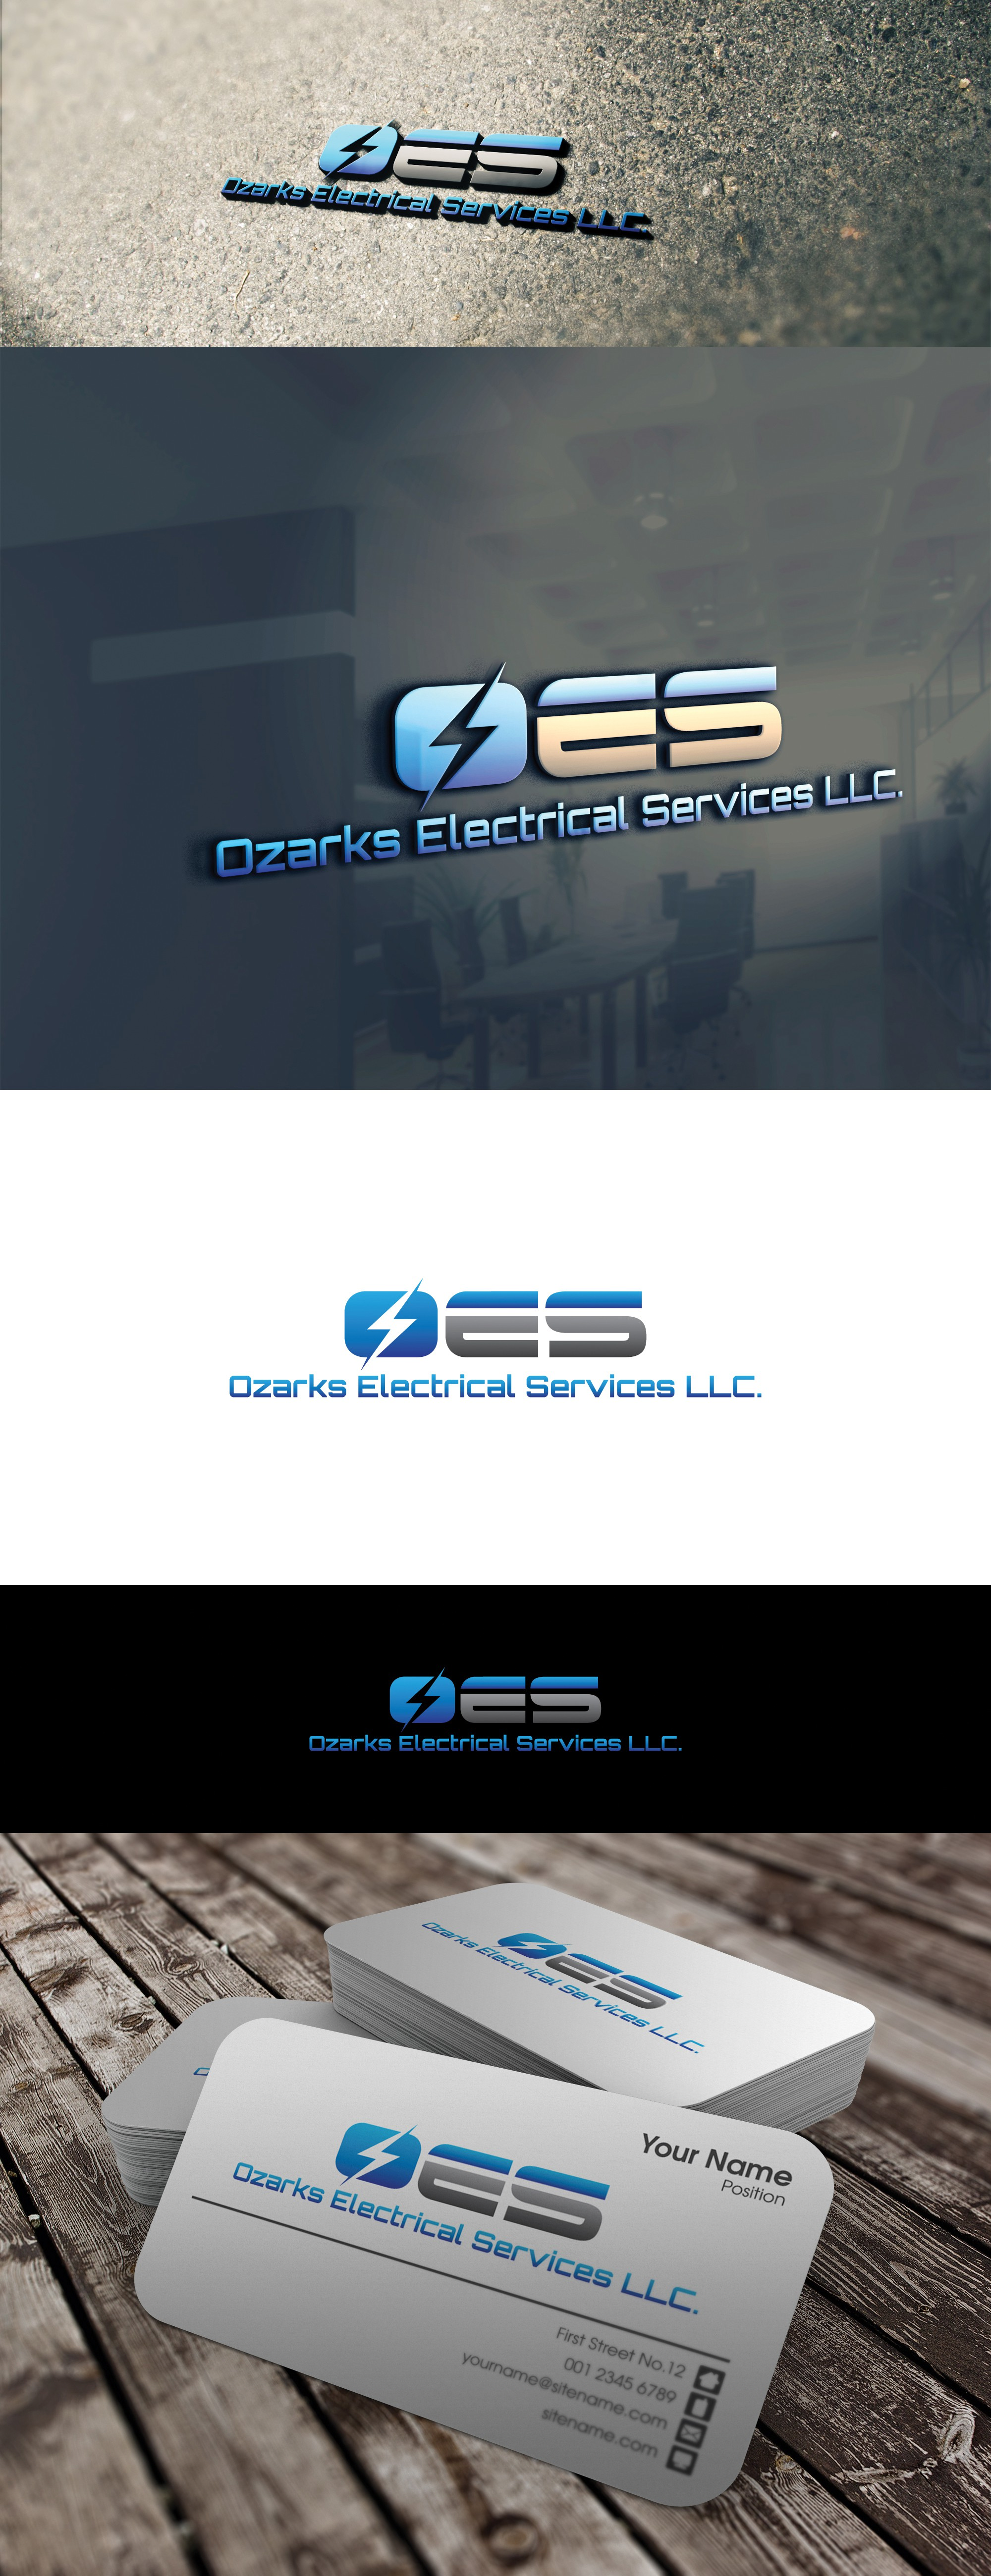 Create a prestige eye catching electrical contracting logo for Ozarks Electrical Services LLC.